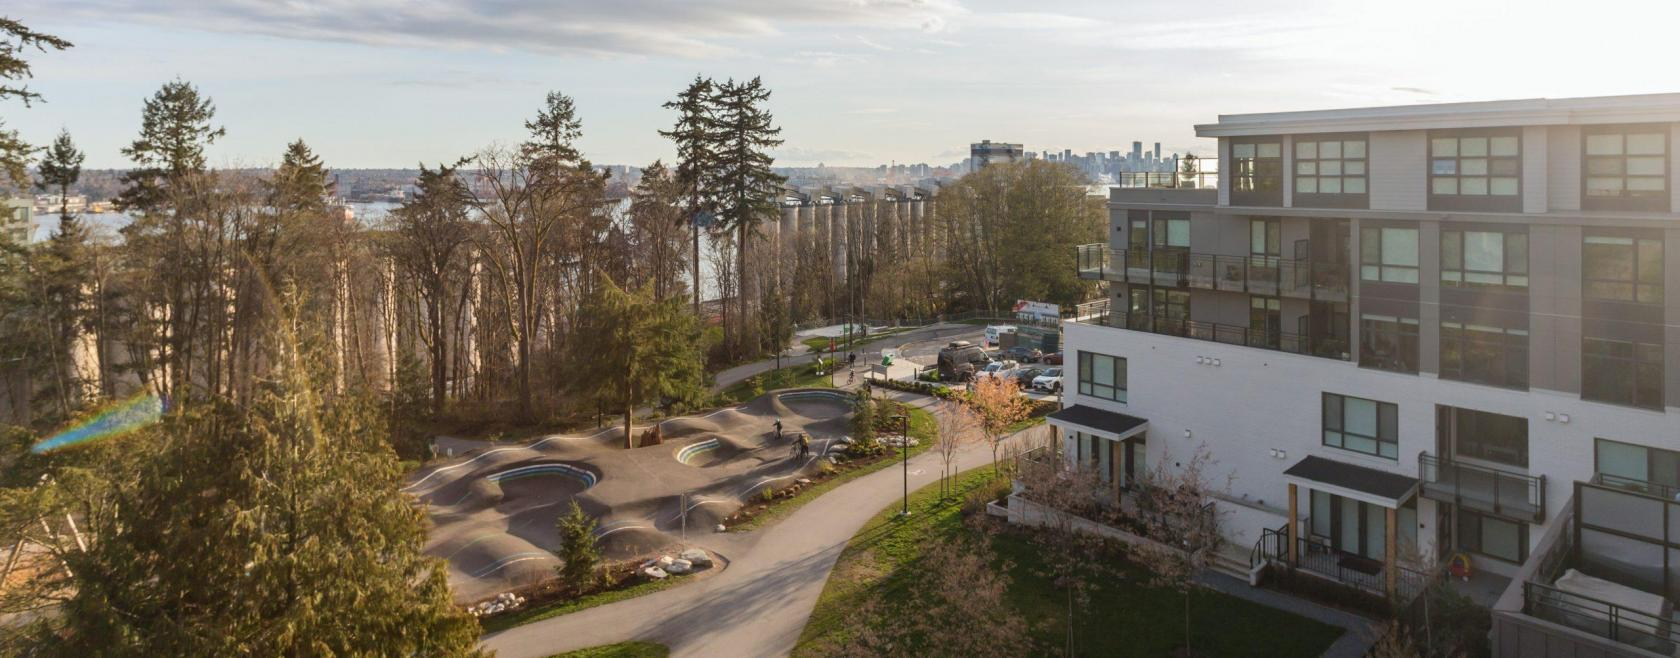 408 - 707 E 3rd Street, Queensbury, North Vancouver 2